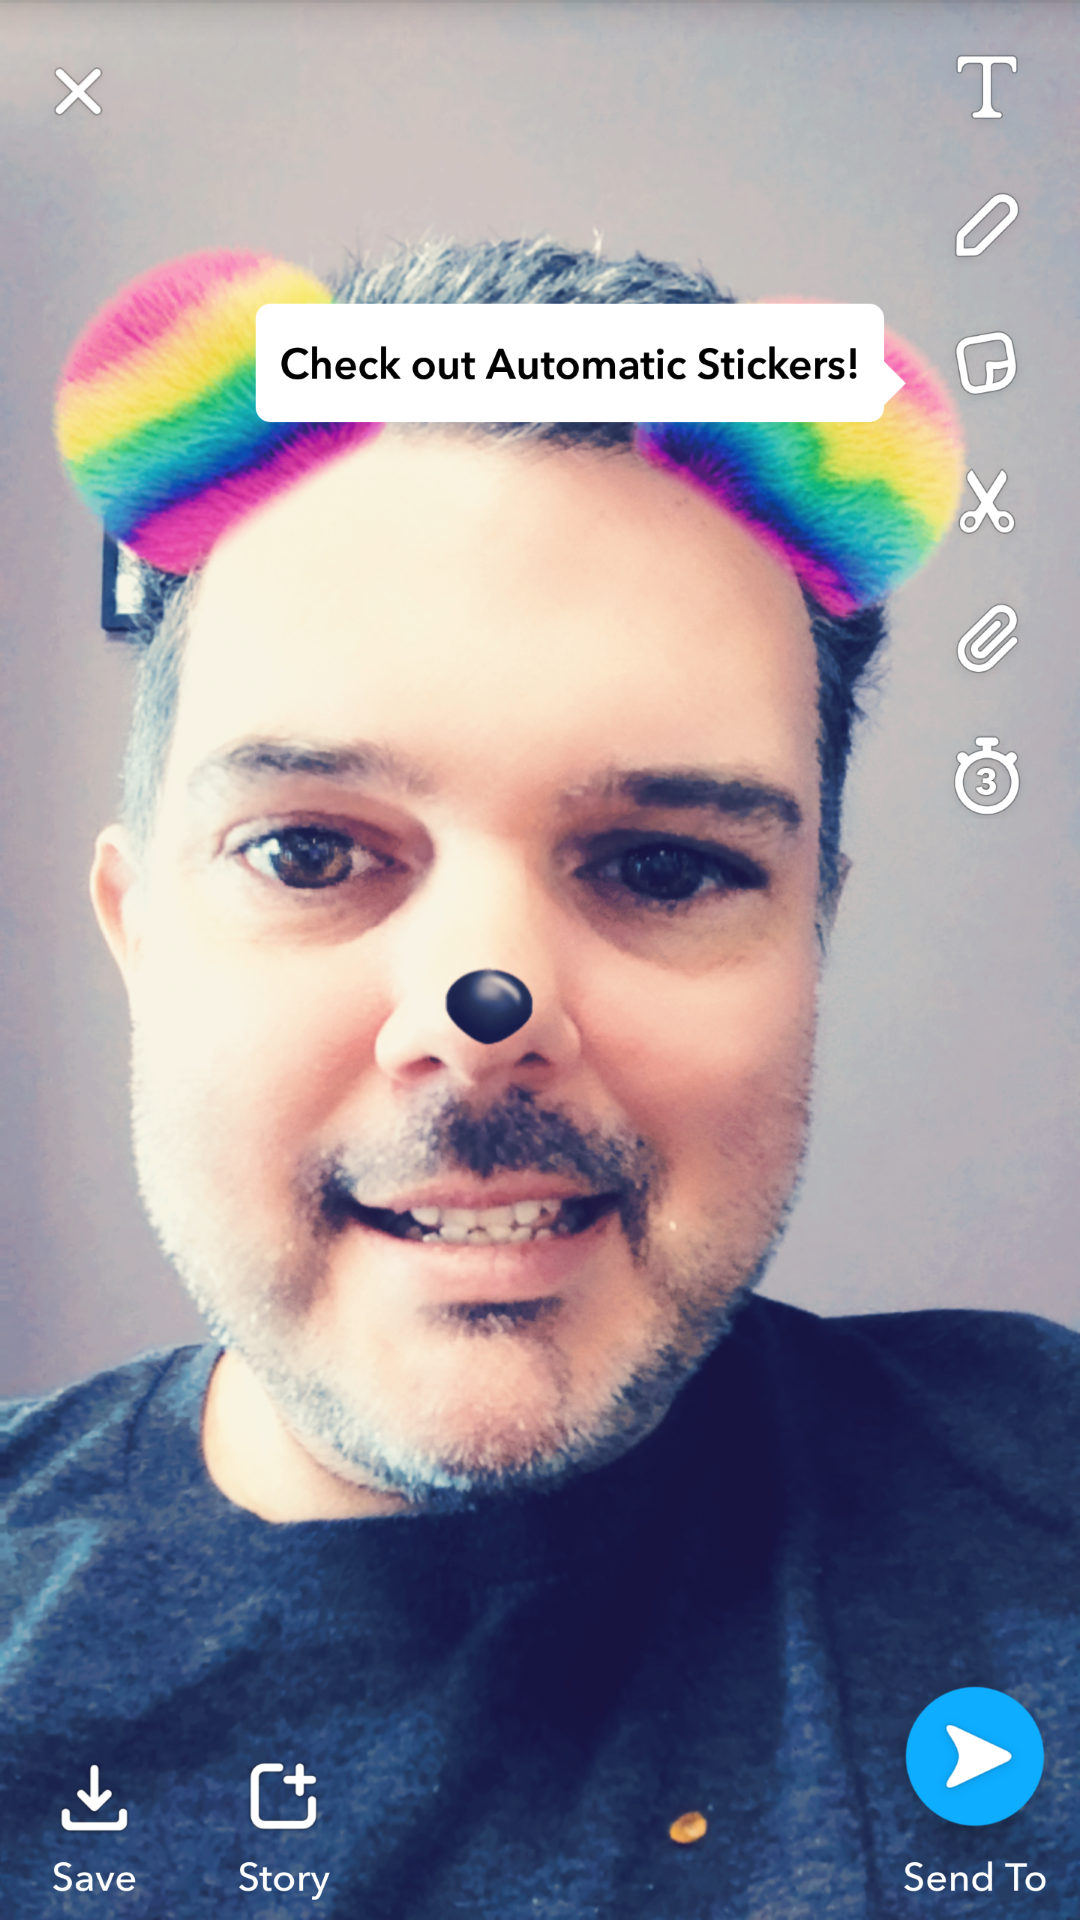 Snapchat on a rooted device